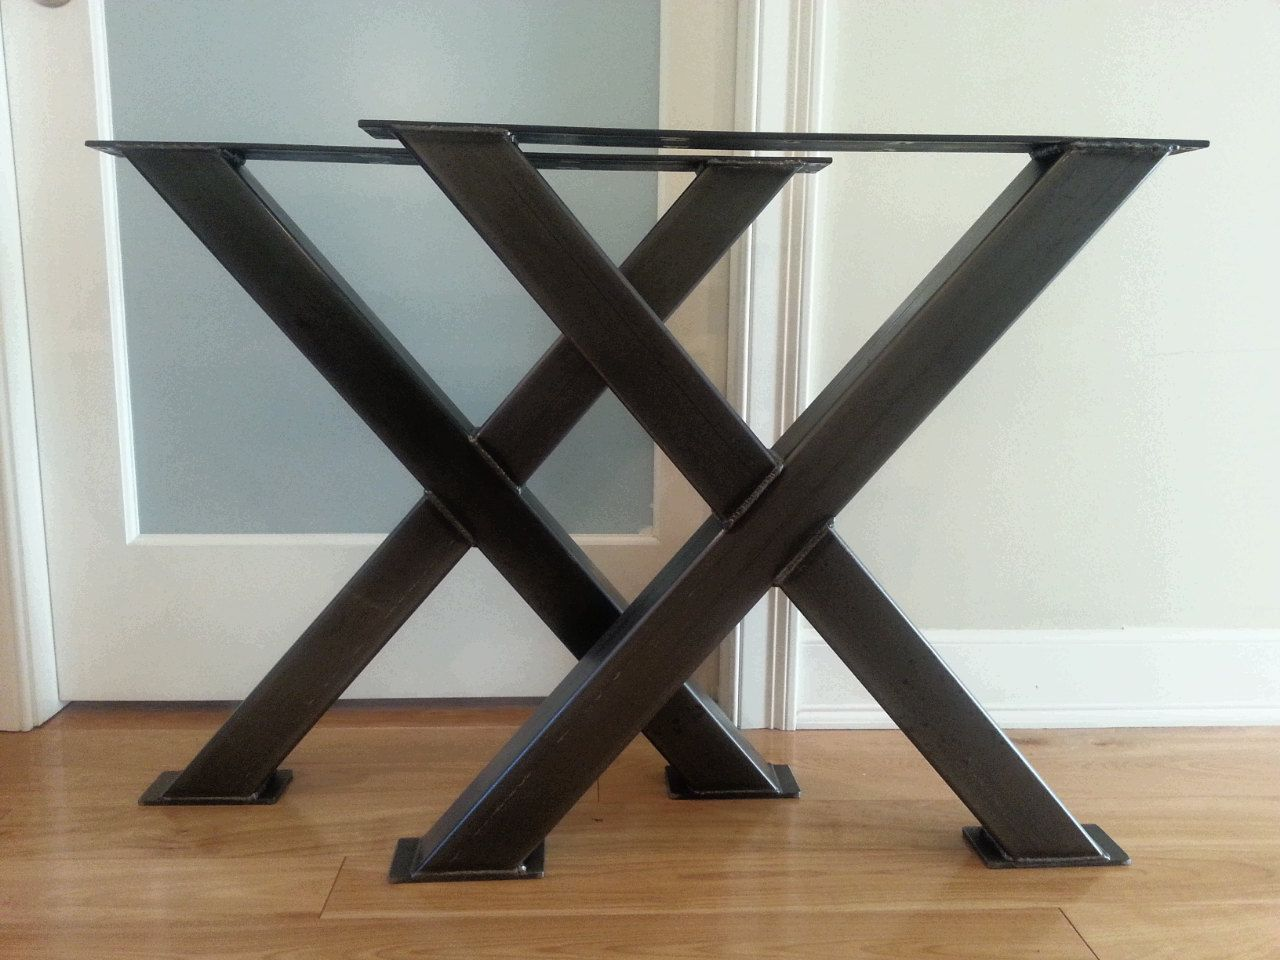 Metal Legs In Many Styles To Make Your Own Table, Desk Or Bench Also  Offering Hand Forged Shelf Brackets Paul J Camire Has Years Of Custom  Fabrication